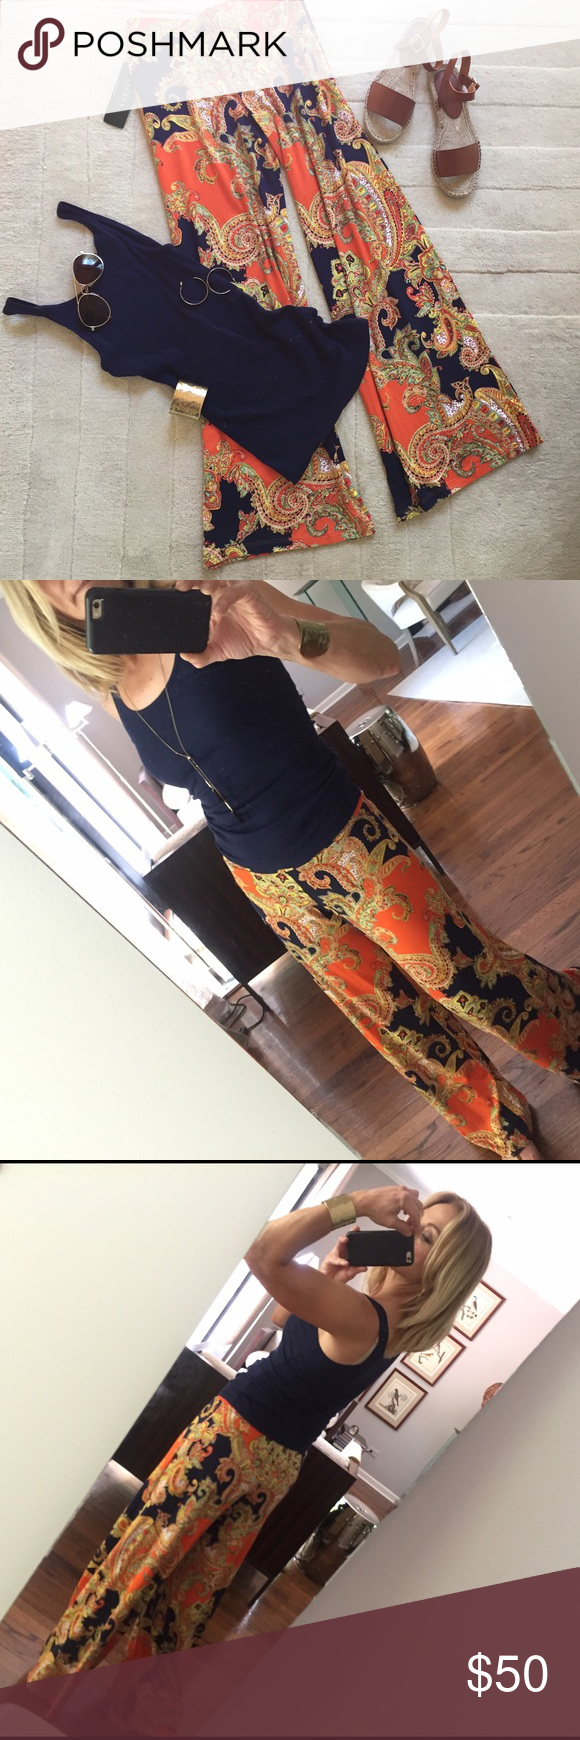 "Ralph Lauren paisley palazzo pants Super comfy palazzo pants from Ralph Lauren. Elastic waist, wide legs, pretty paisley print in mostly orange and navy blue.  29"" inseam. Brand new. Machine wash/flat dry. Ralph Lauren Pants Wide Leg"